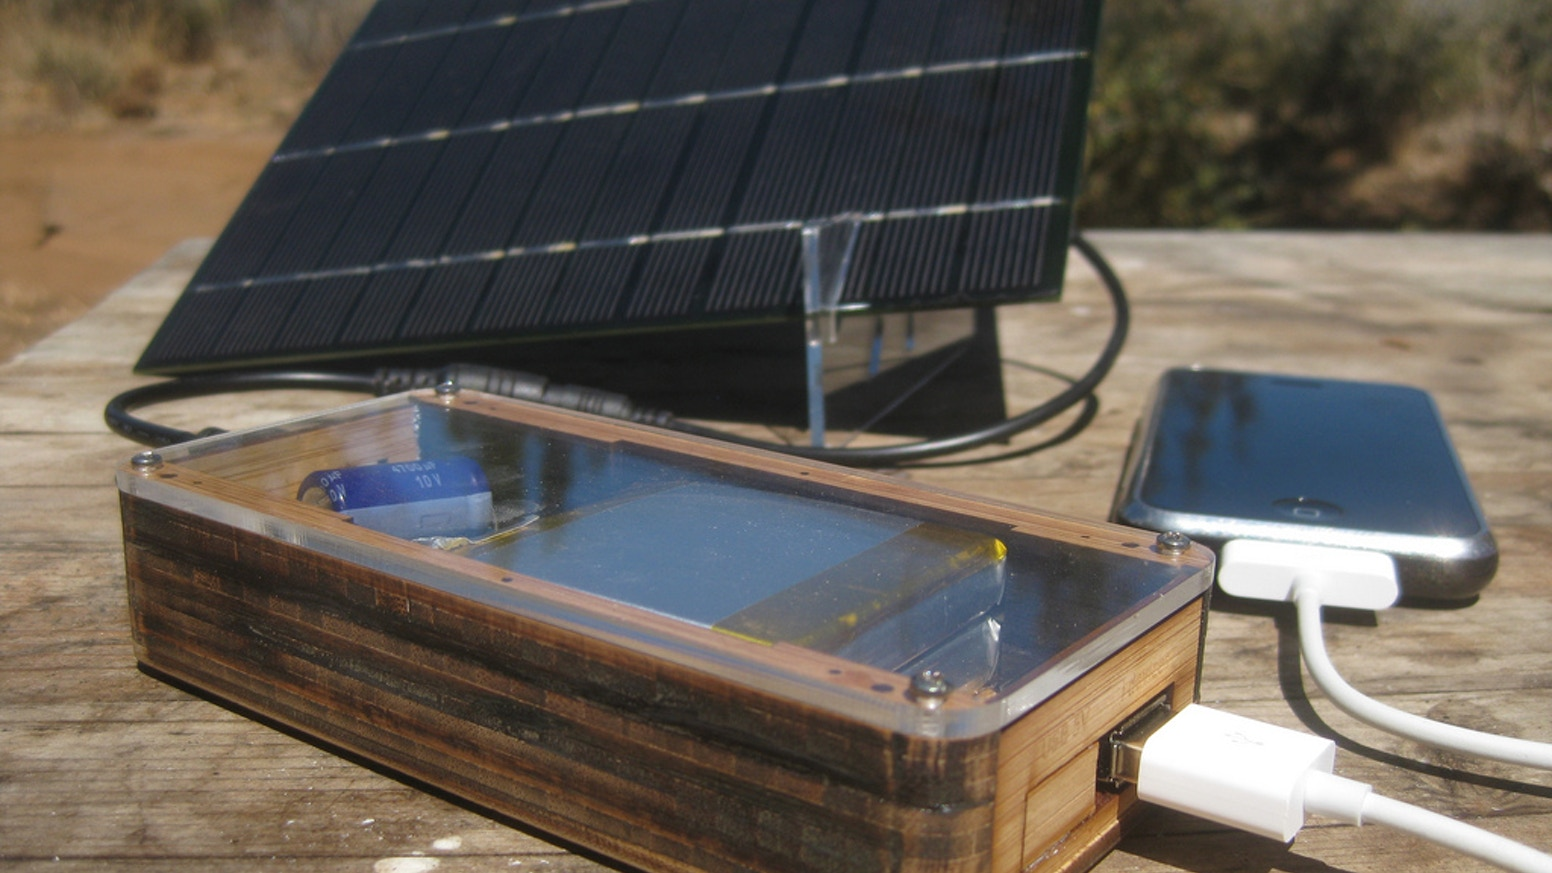 Want to power your smart phone, tablet, Raspberry Pi, or Arduino project with green solar energy? This kit includes everything you need!